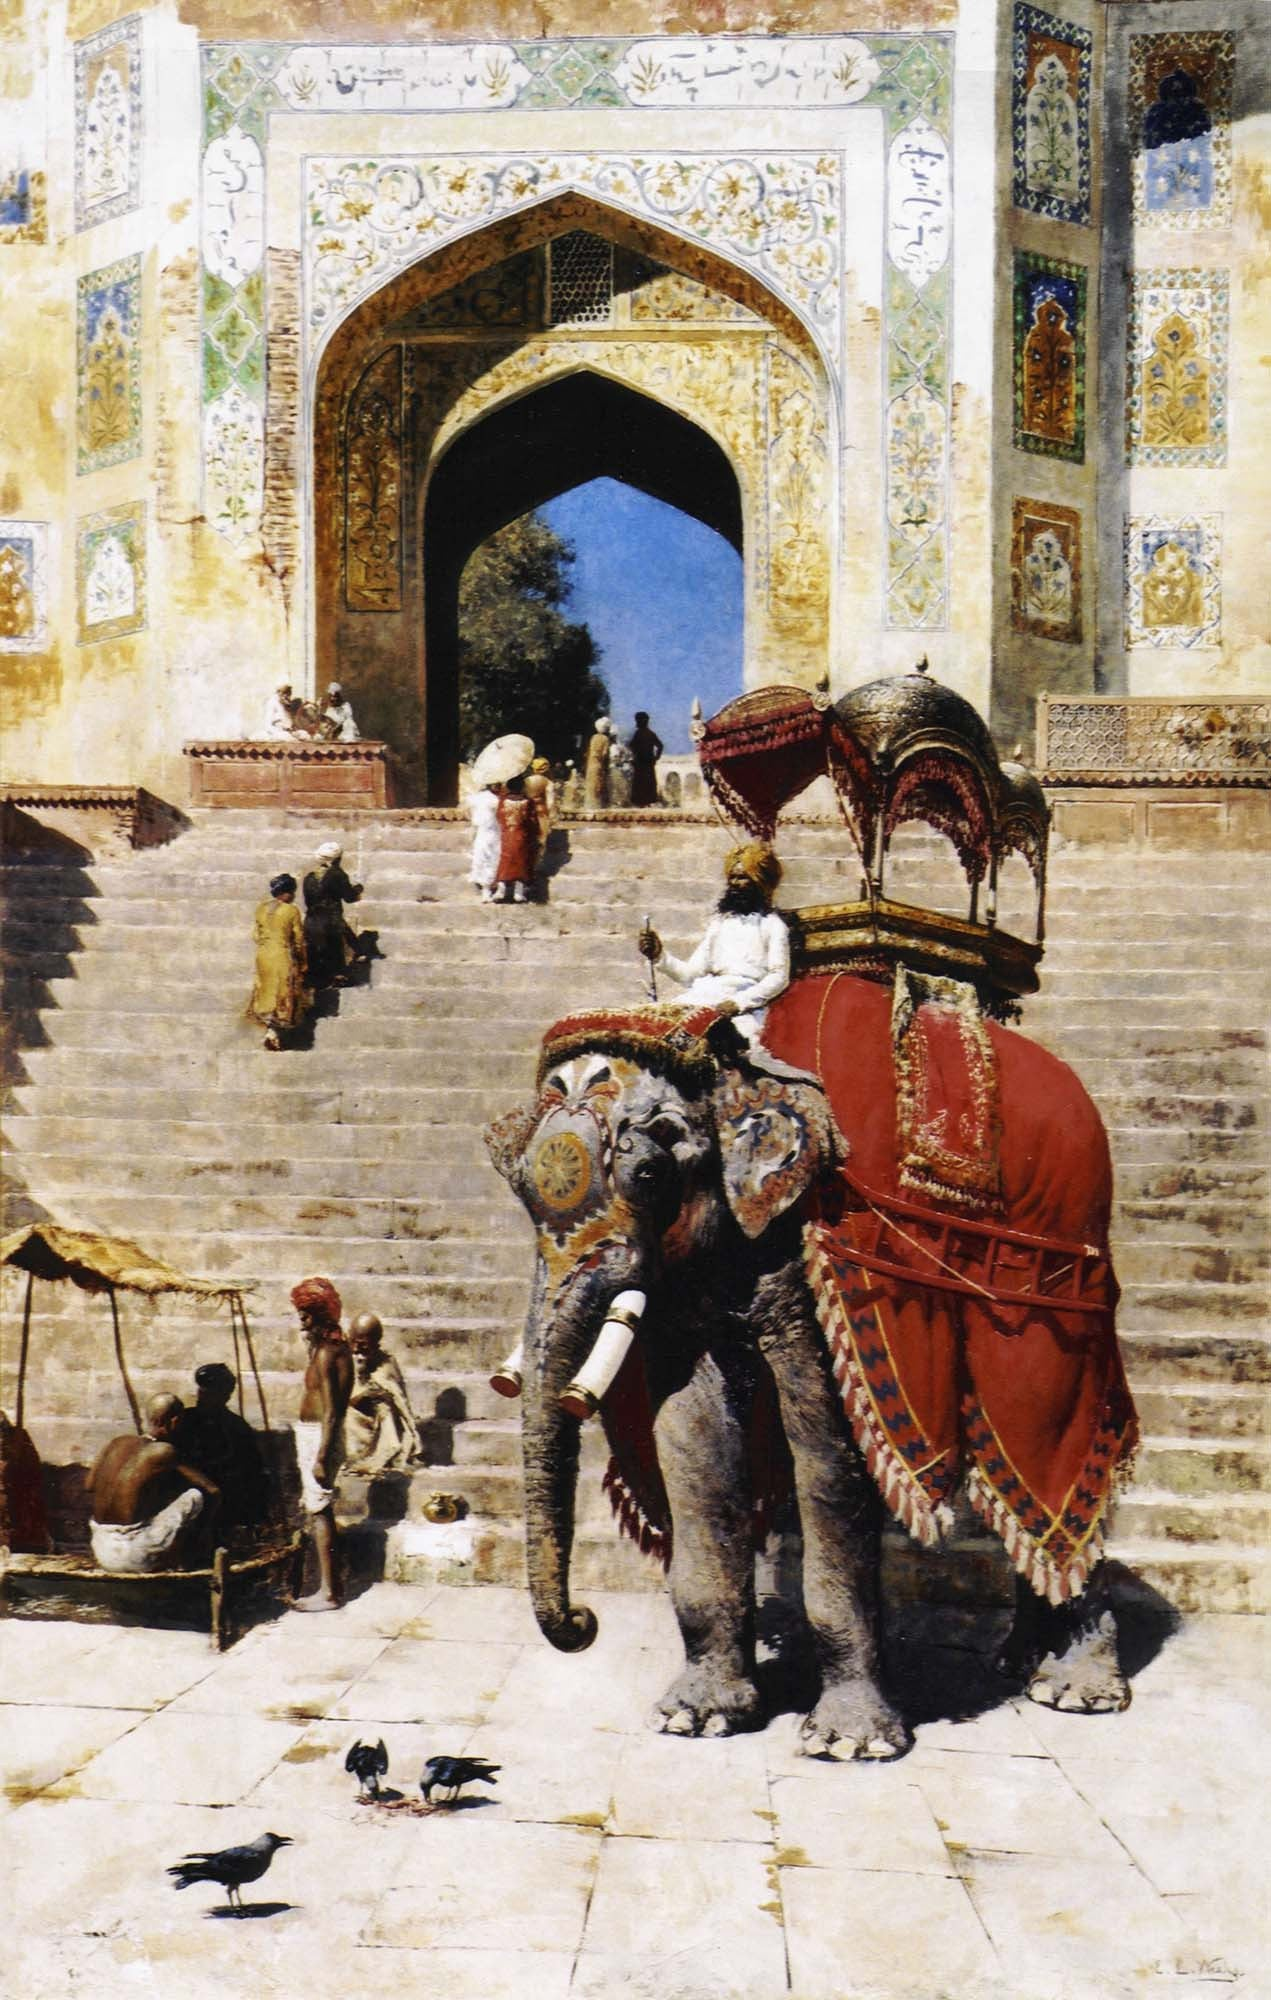 Edwin Lord Weeks Paintings | Buy Posters, Frames, Canvas, Digital Art & Large Size Prints Of The Famous Modern Master's Artworks